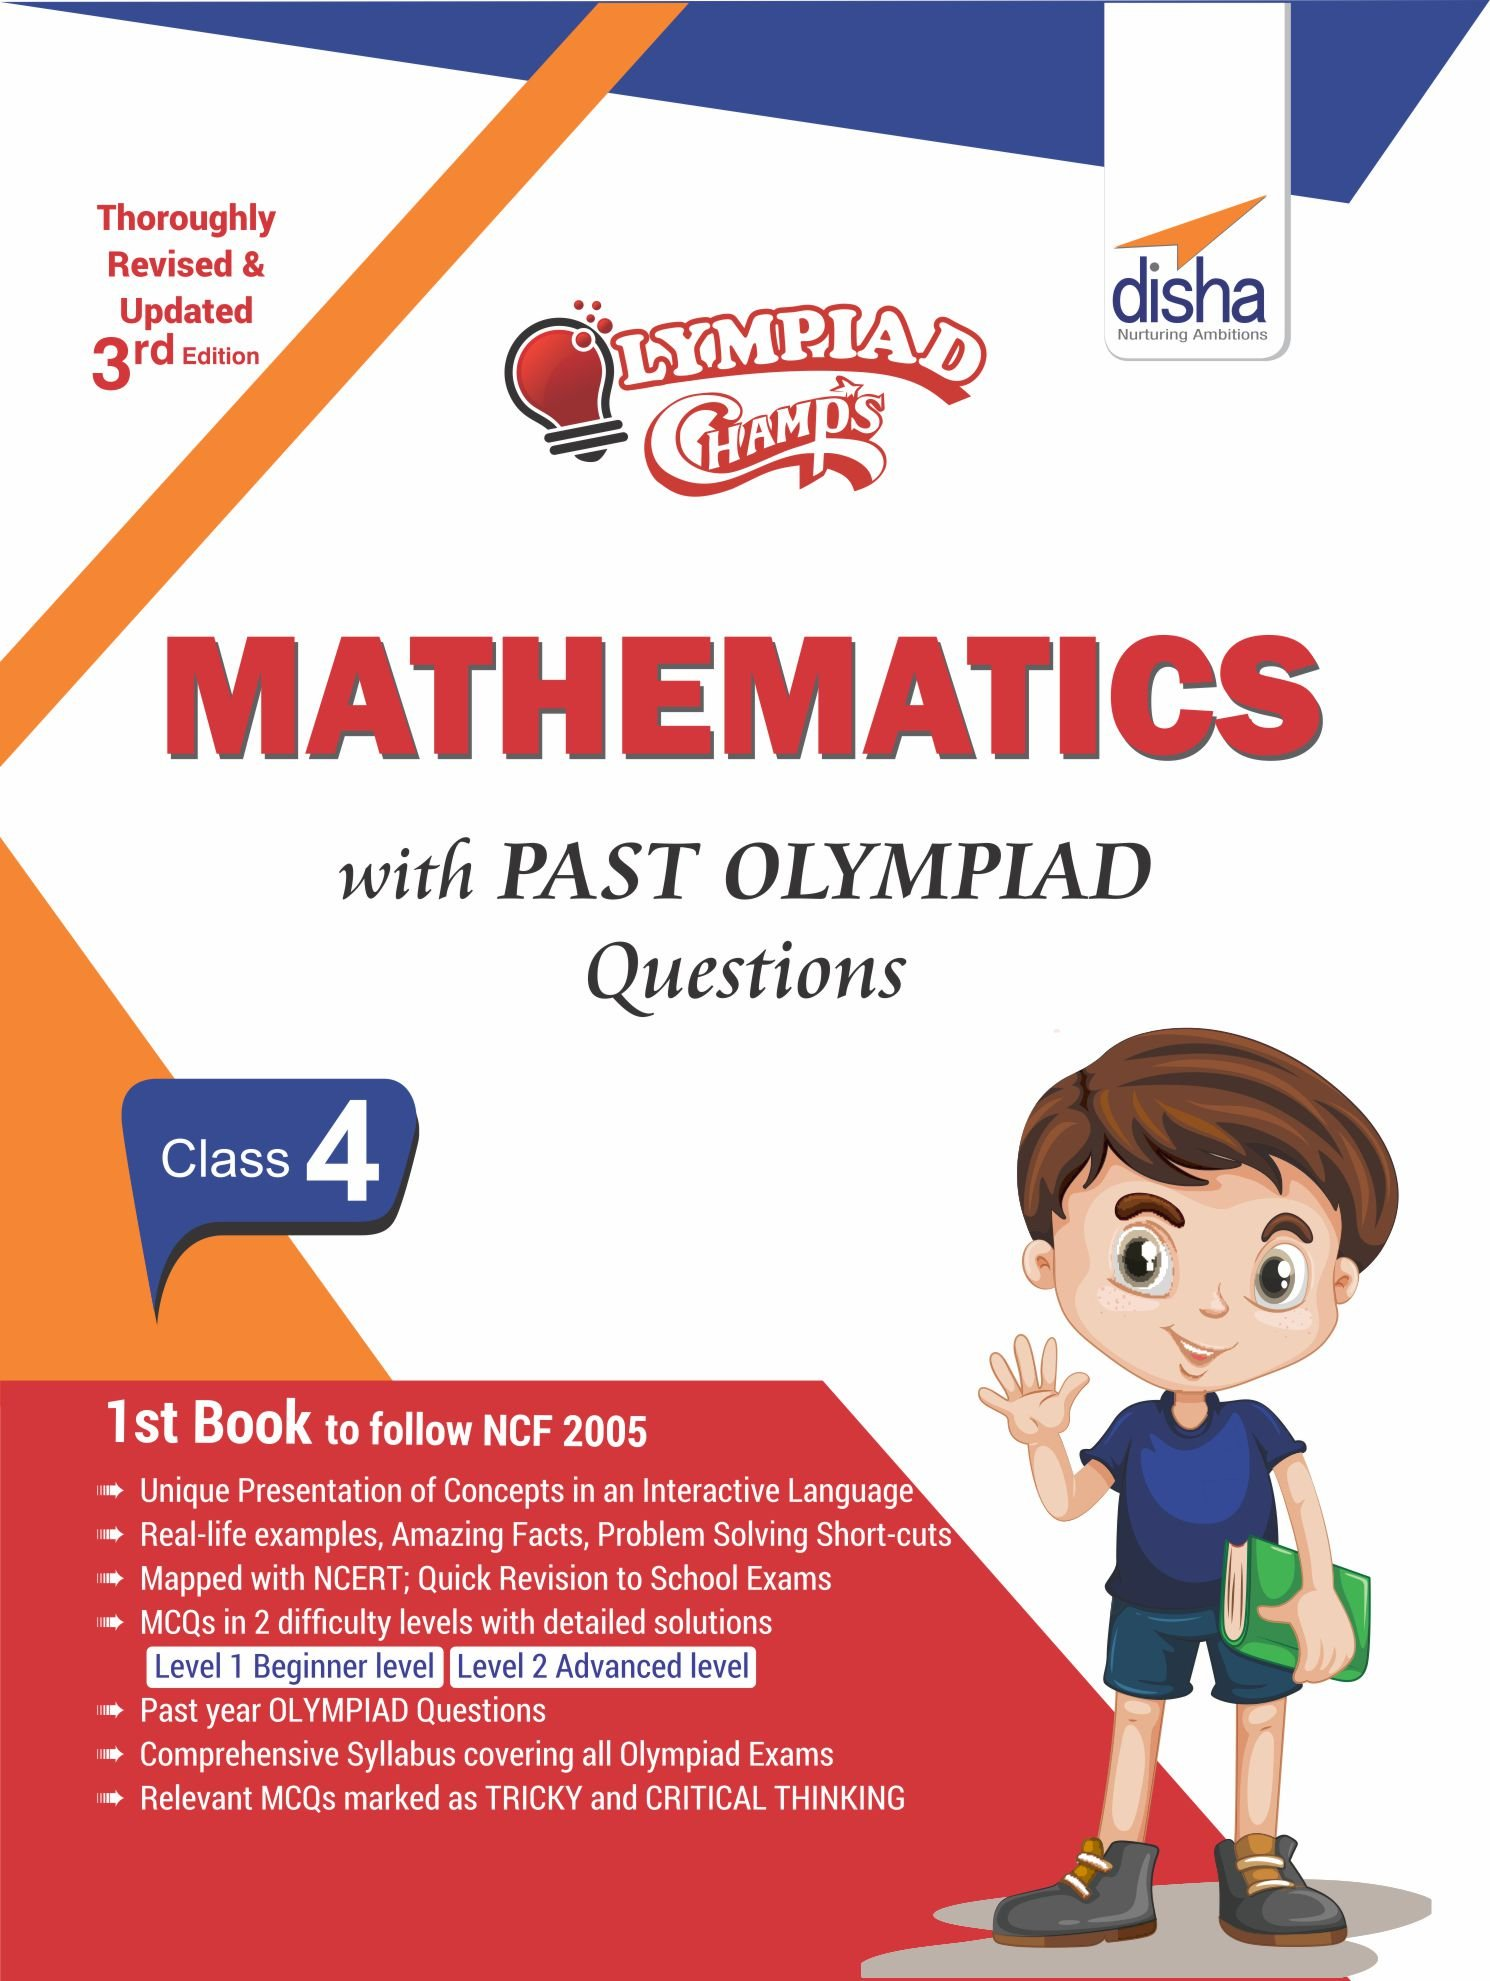 Buy Olympiad Champs Mathematics Class 4 with Past Olympiad Questions